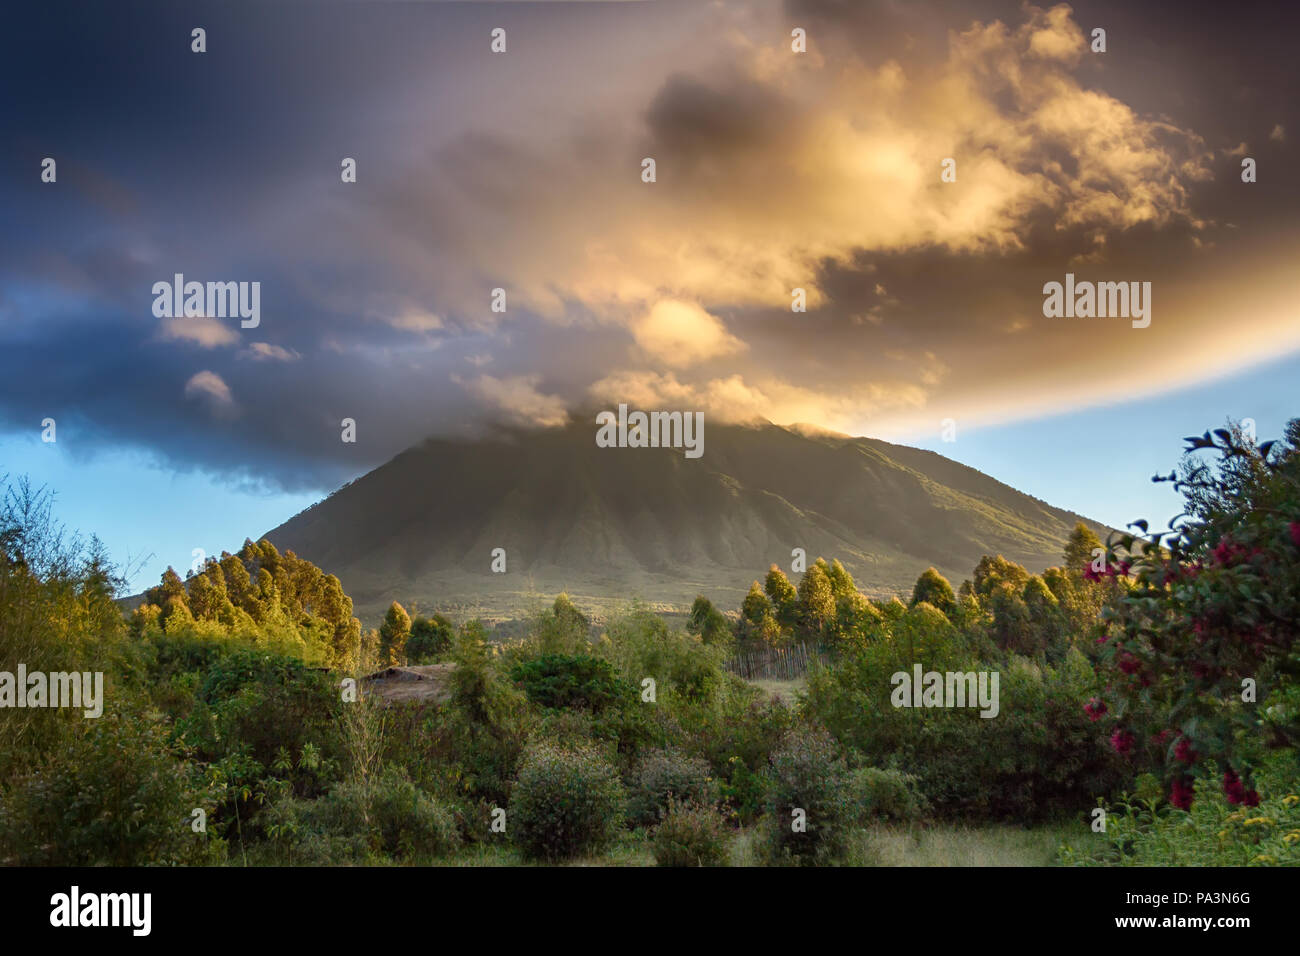 Mount Sabyinyo, an extinct volcano in the Virunga Mountains.  The summit marks the intersection of the border of Rwanda, Uganda and DRC - Stock Image